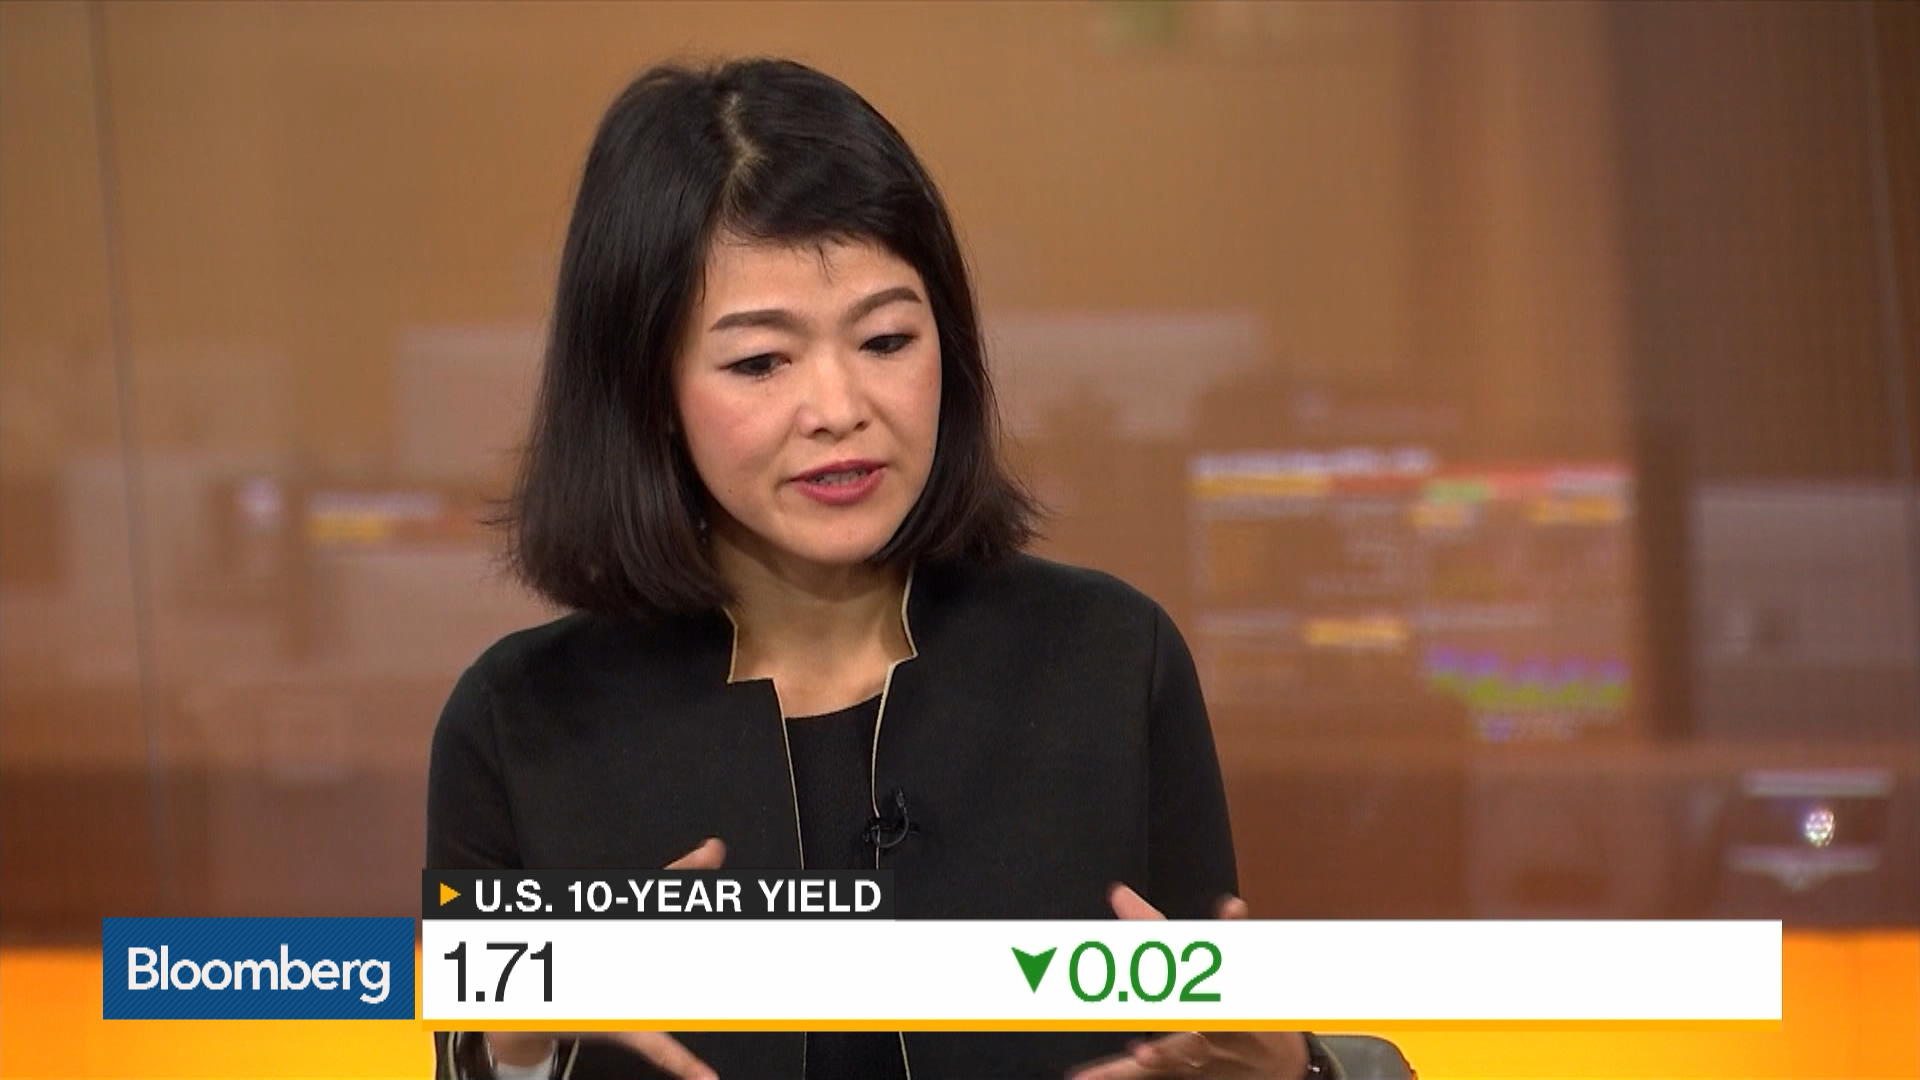 Wei Li, BlackRock's Head of iShares EMEA Investment Strategy, on Investment Flows Into Bonds, Stocks